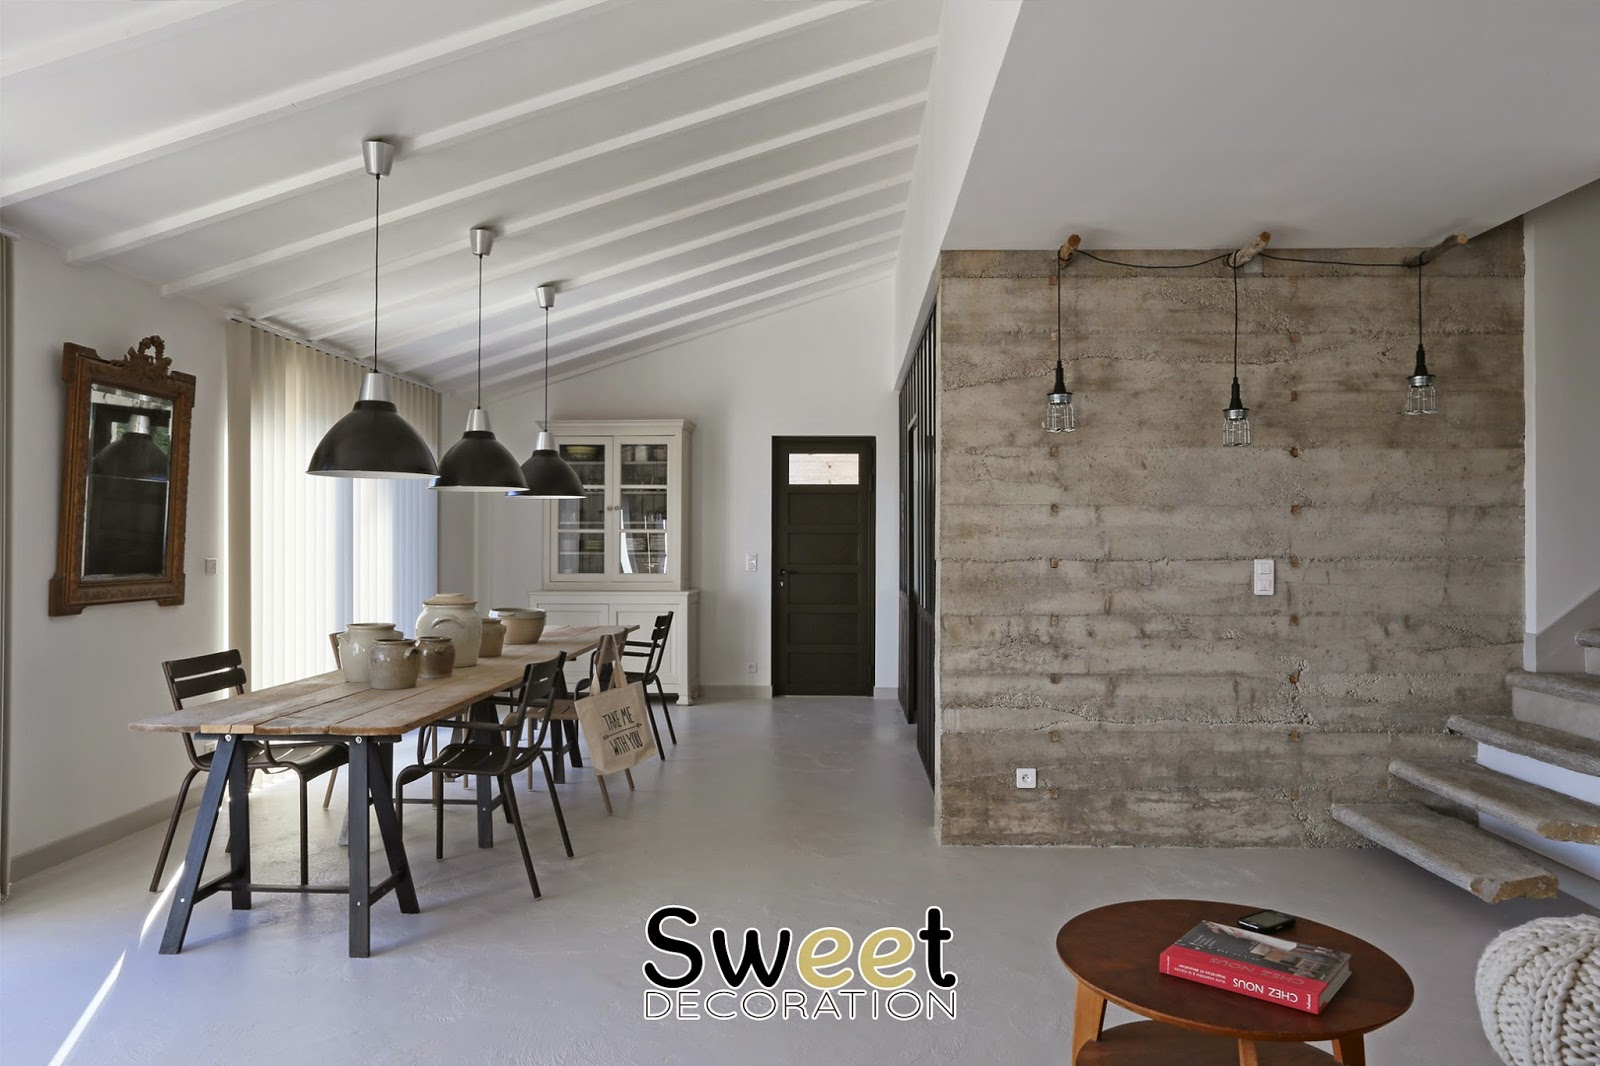 Am nagement int rieur d 39 une maison contemporaine sweet for Amenagement interieur d une maison